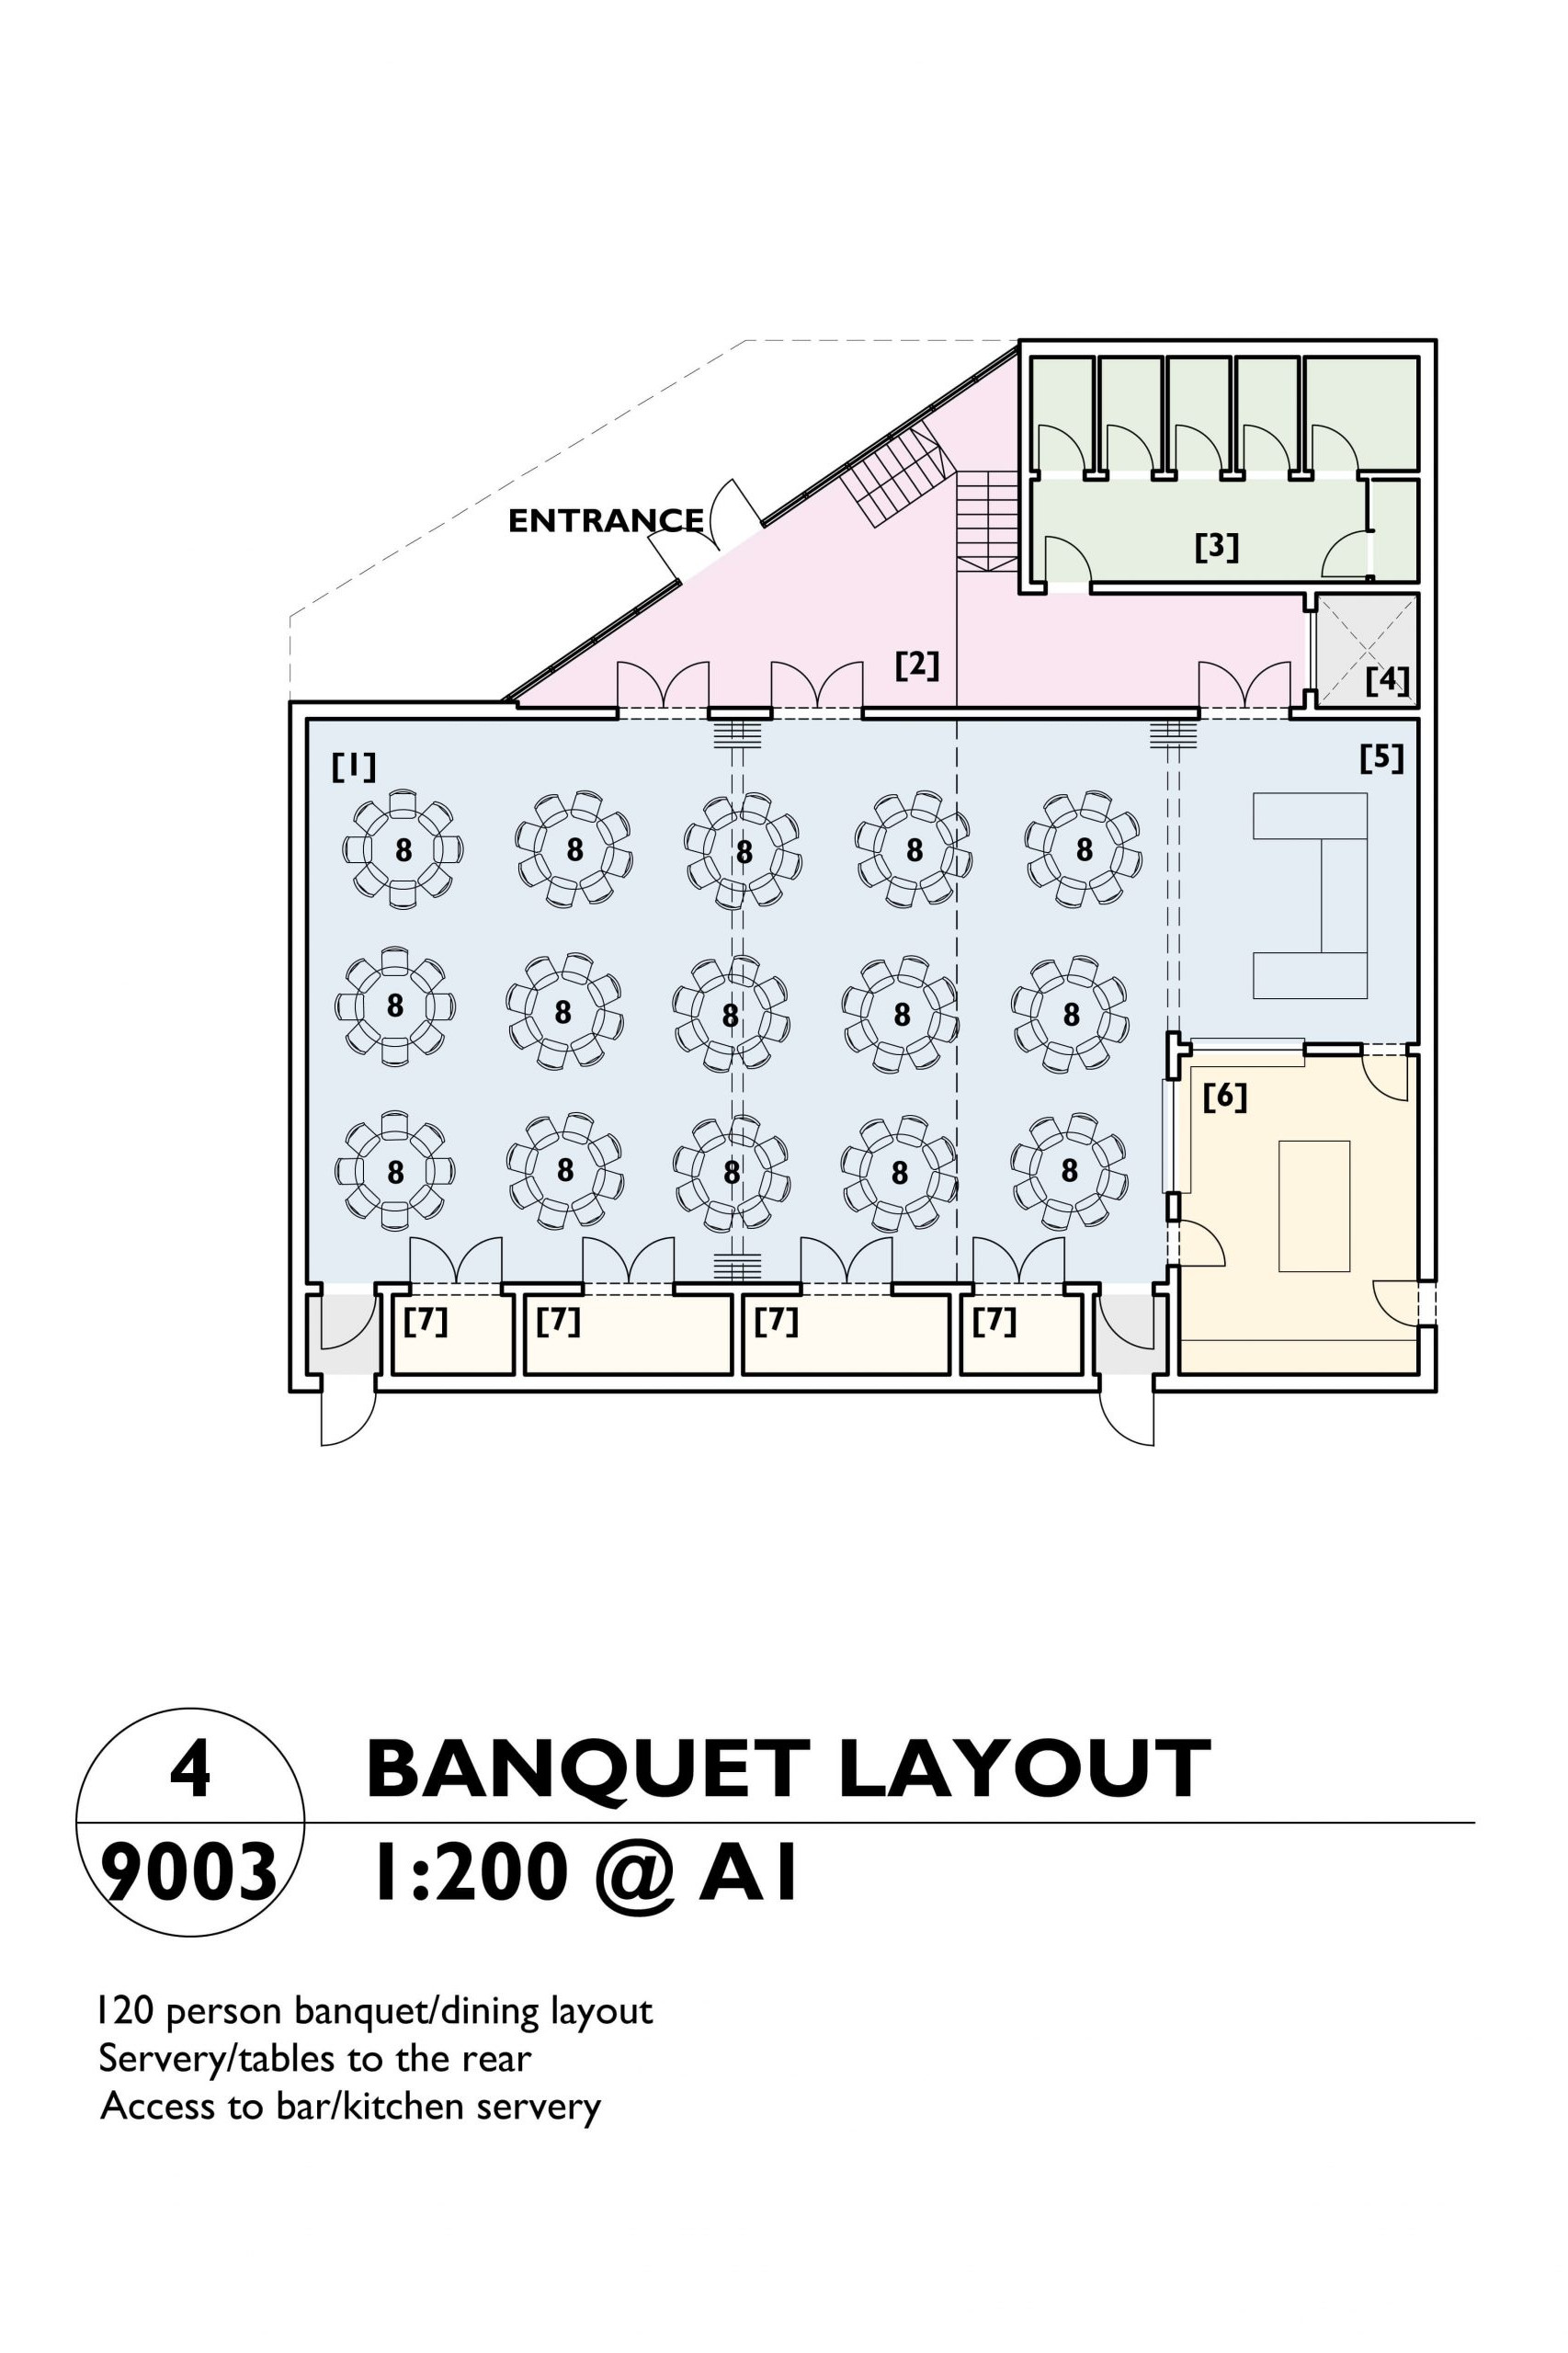 Image showing the banquet layout plan of the Mill Arts Centre